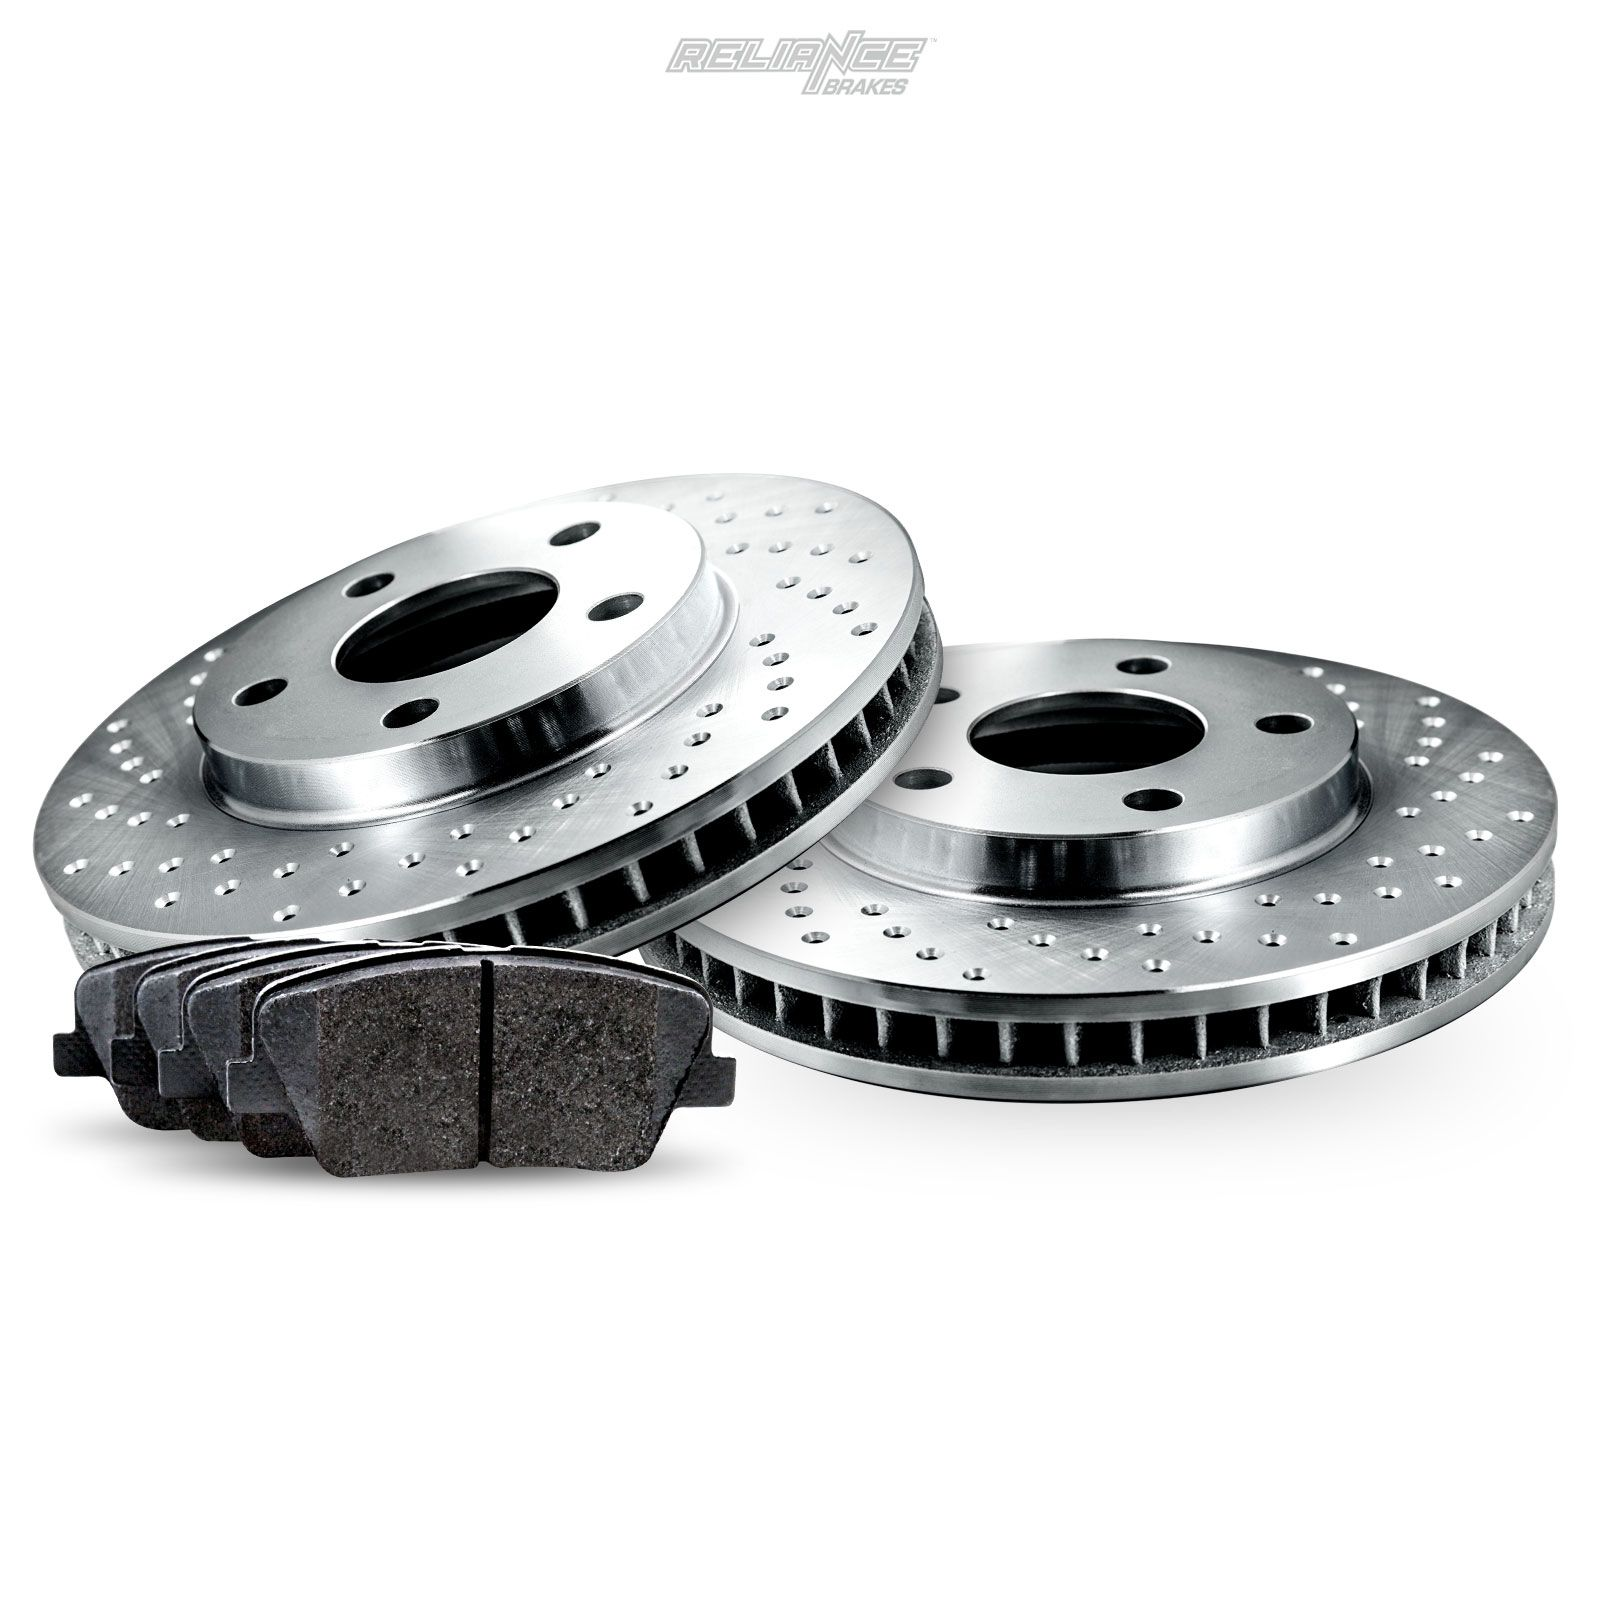 Chrysler Crossfire SRT-6 05 06 Brake Disc Rotors REAR